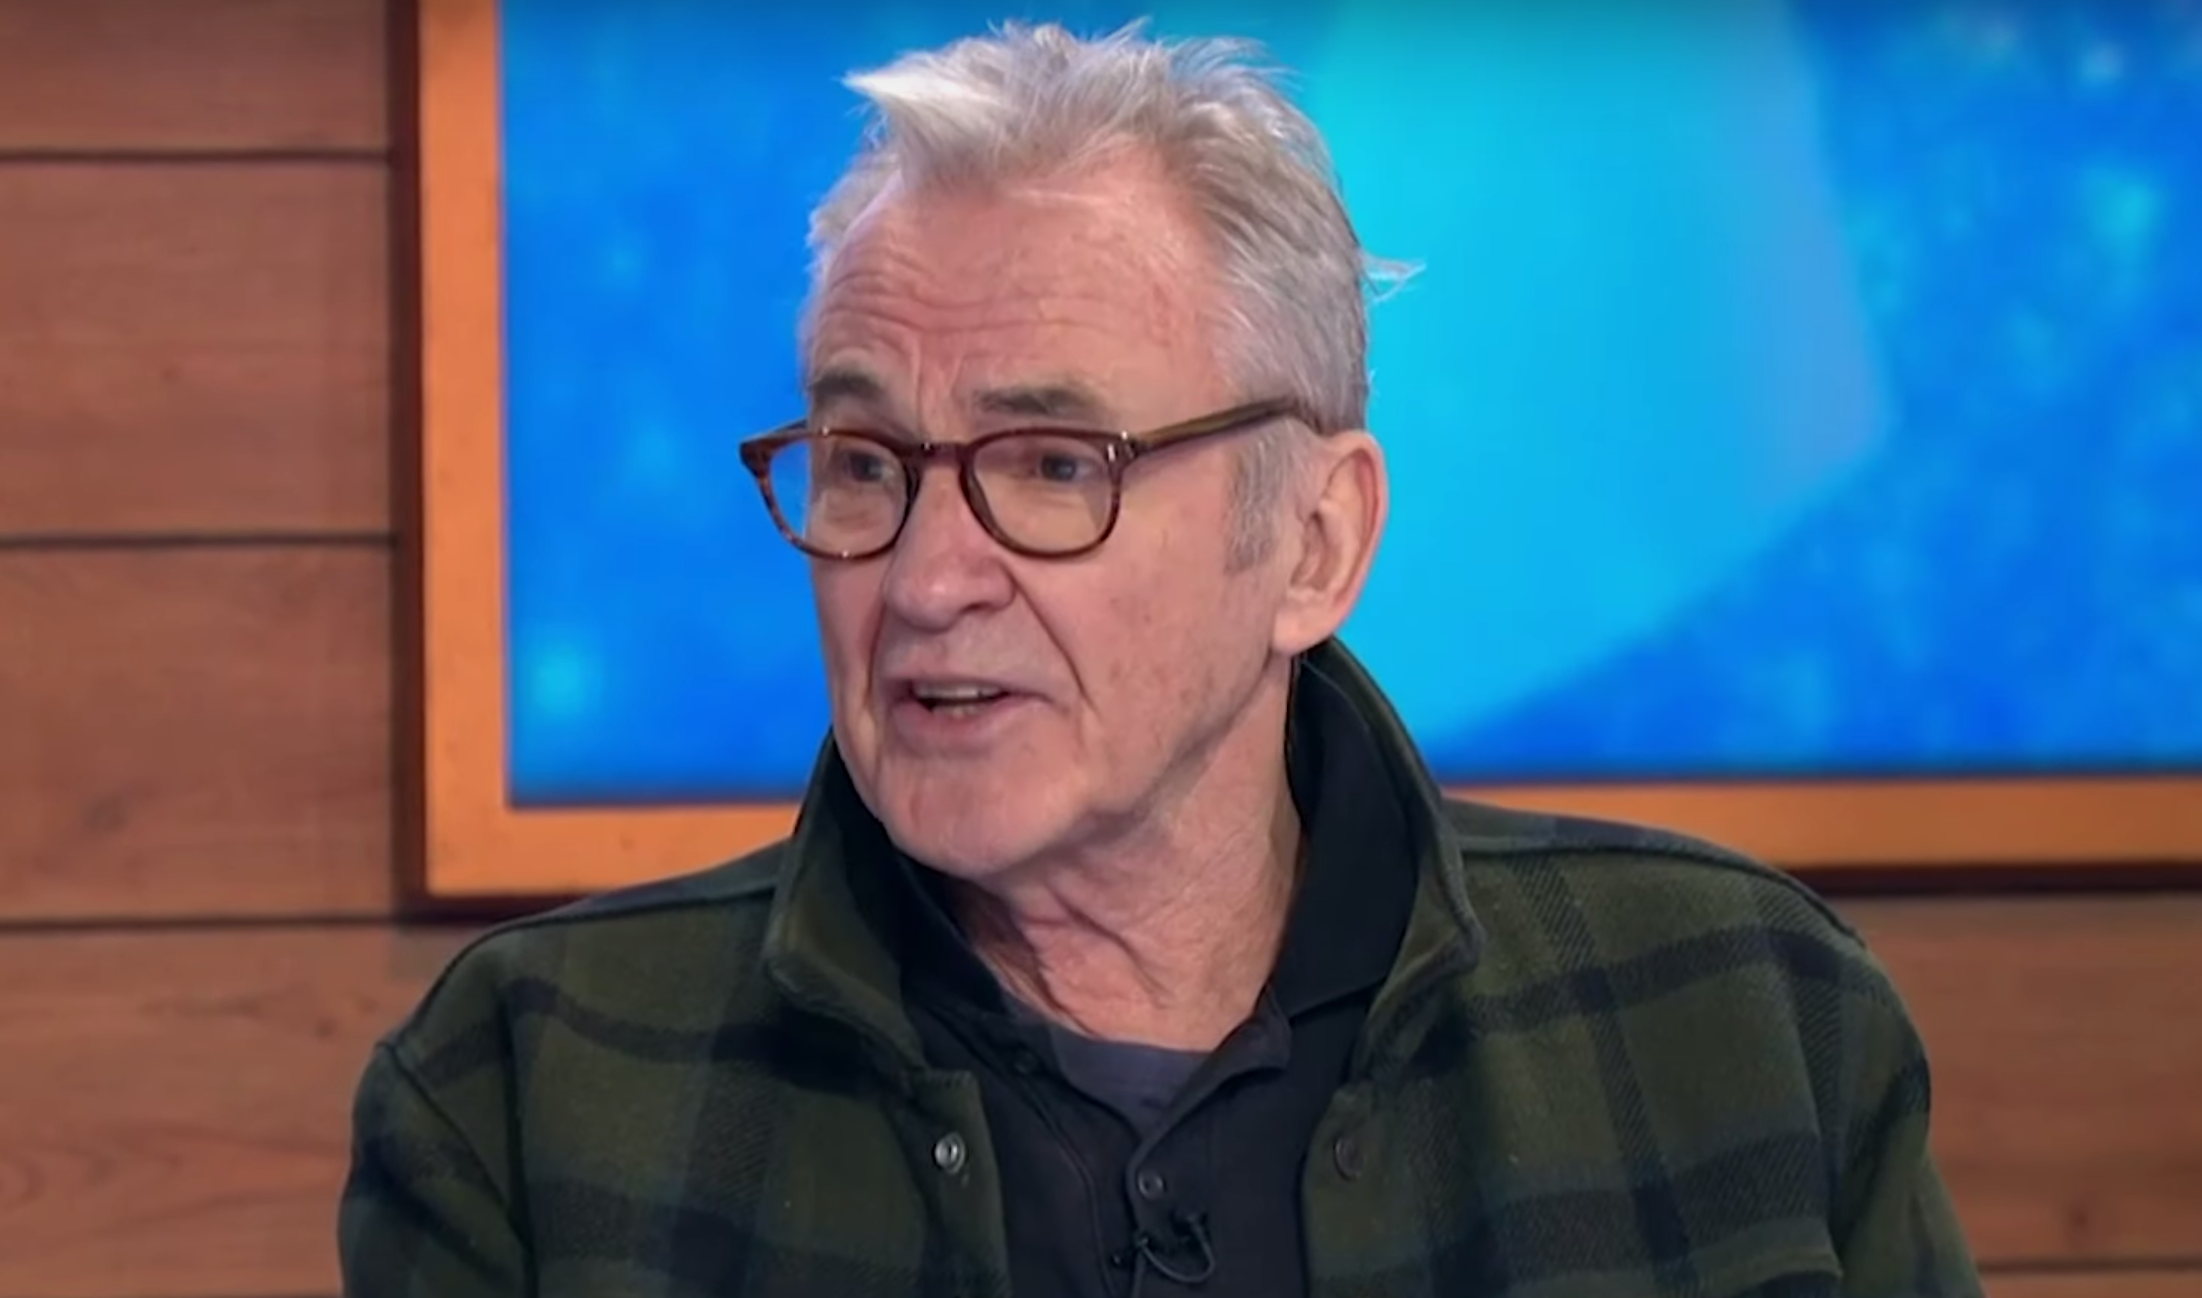 Gavin & Stacey star Larry Lamb addresses how US fame has 'changed' James Corden